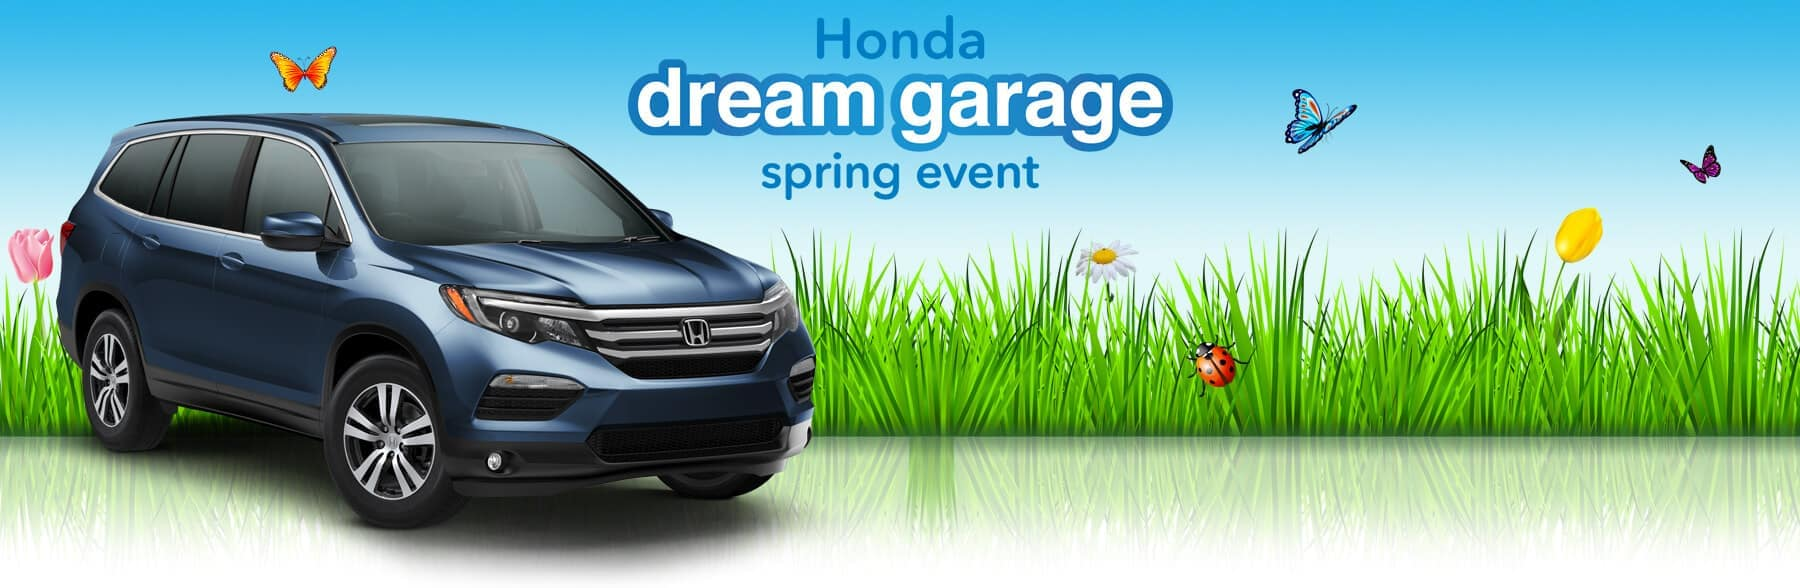 Honda Dream Garage Spring Event 2018 Honda Pilot